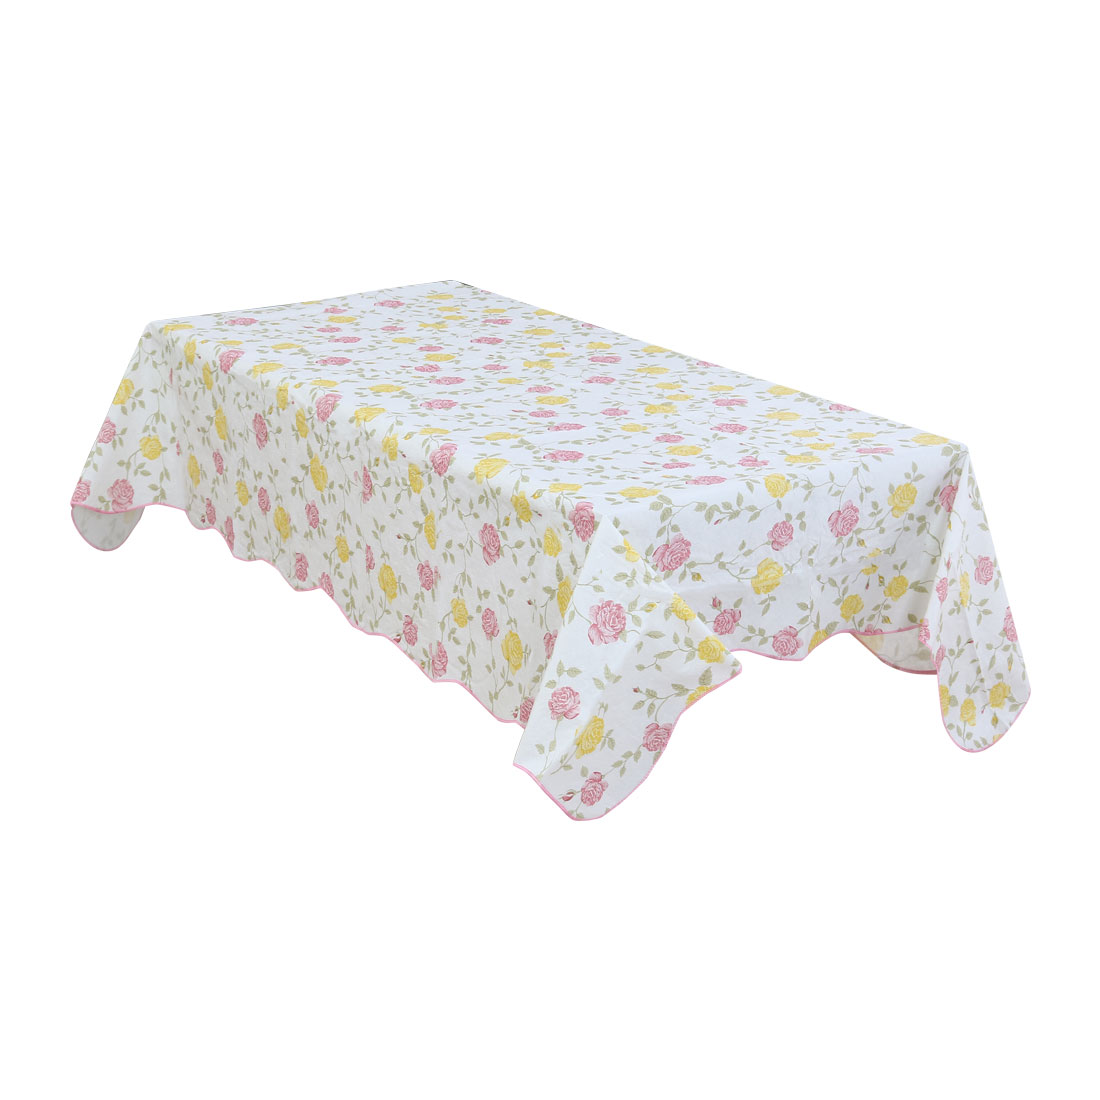 Home Picnic Bi-color Rose Pattern Water Resistant Oil-proof Tablecloth Table Cloth Cover 72 x 54 Inch